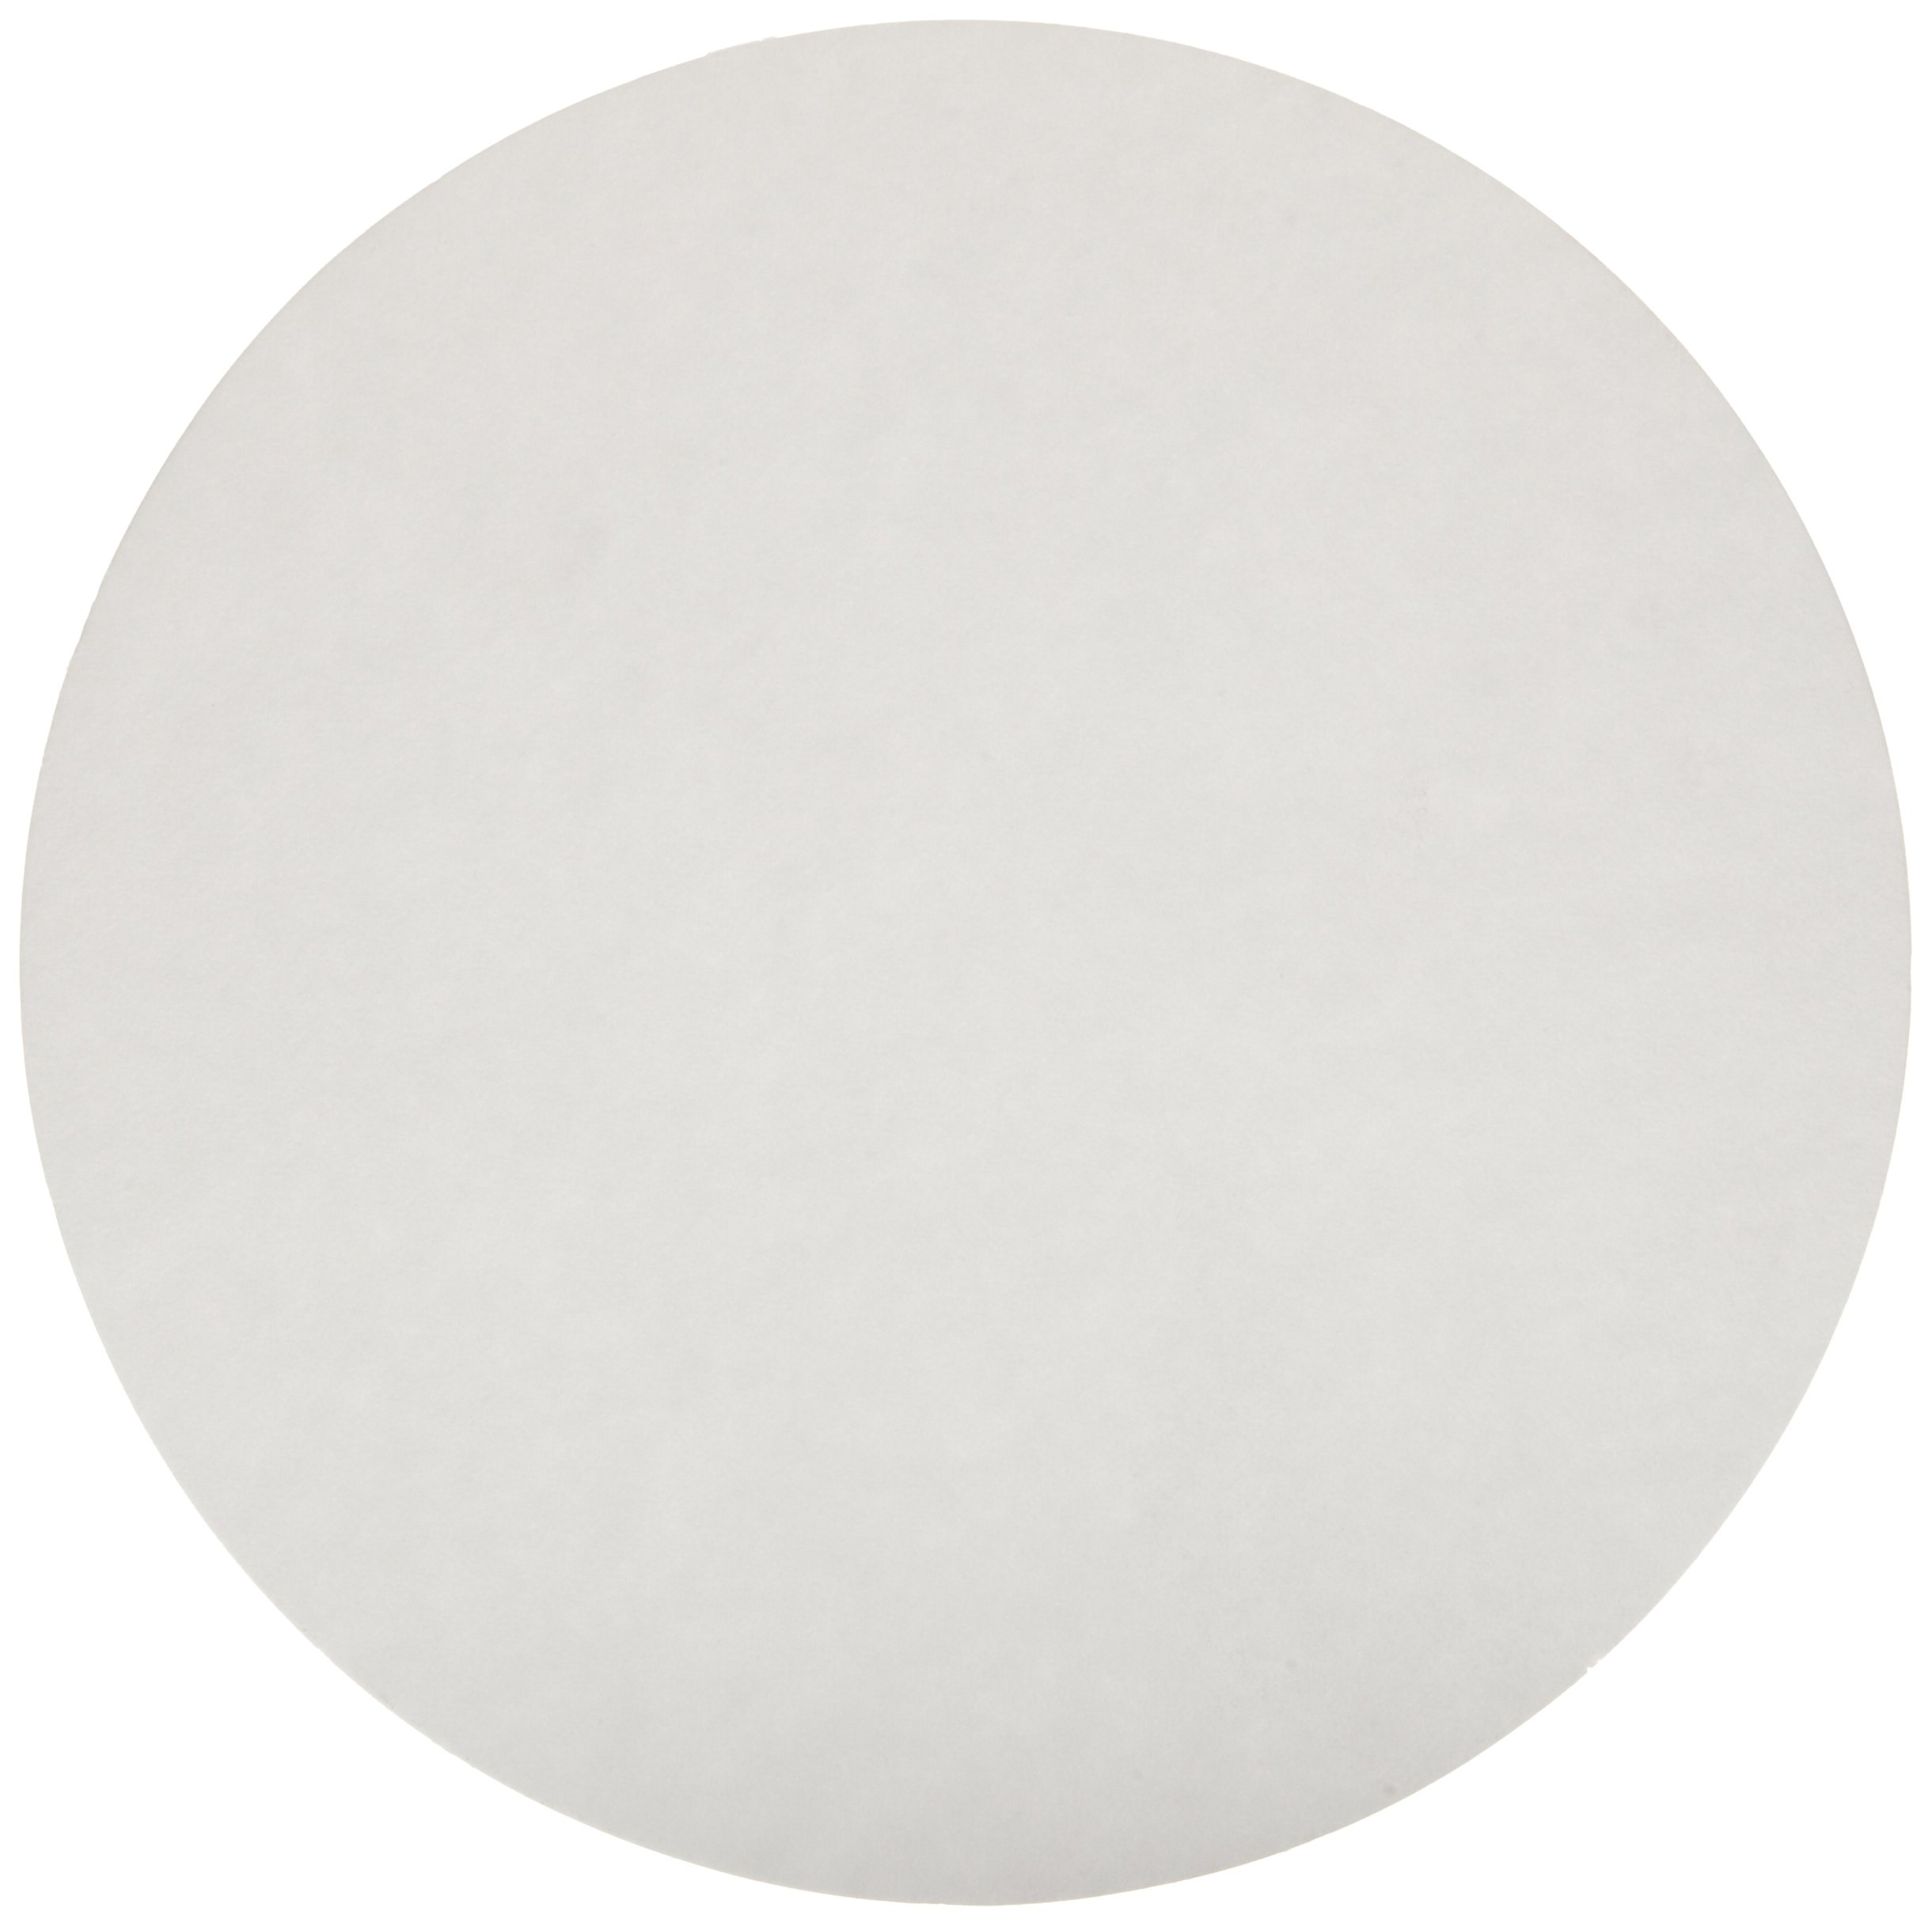 Ahlstrom 6420-0550 Qualitative Filter Paper, 2 Micron, Medium Flow, Grade 642, 5.5cm Diameter (Pack of 100) by Ahlstrom